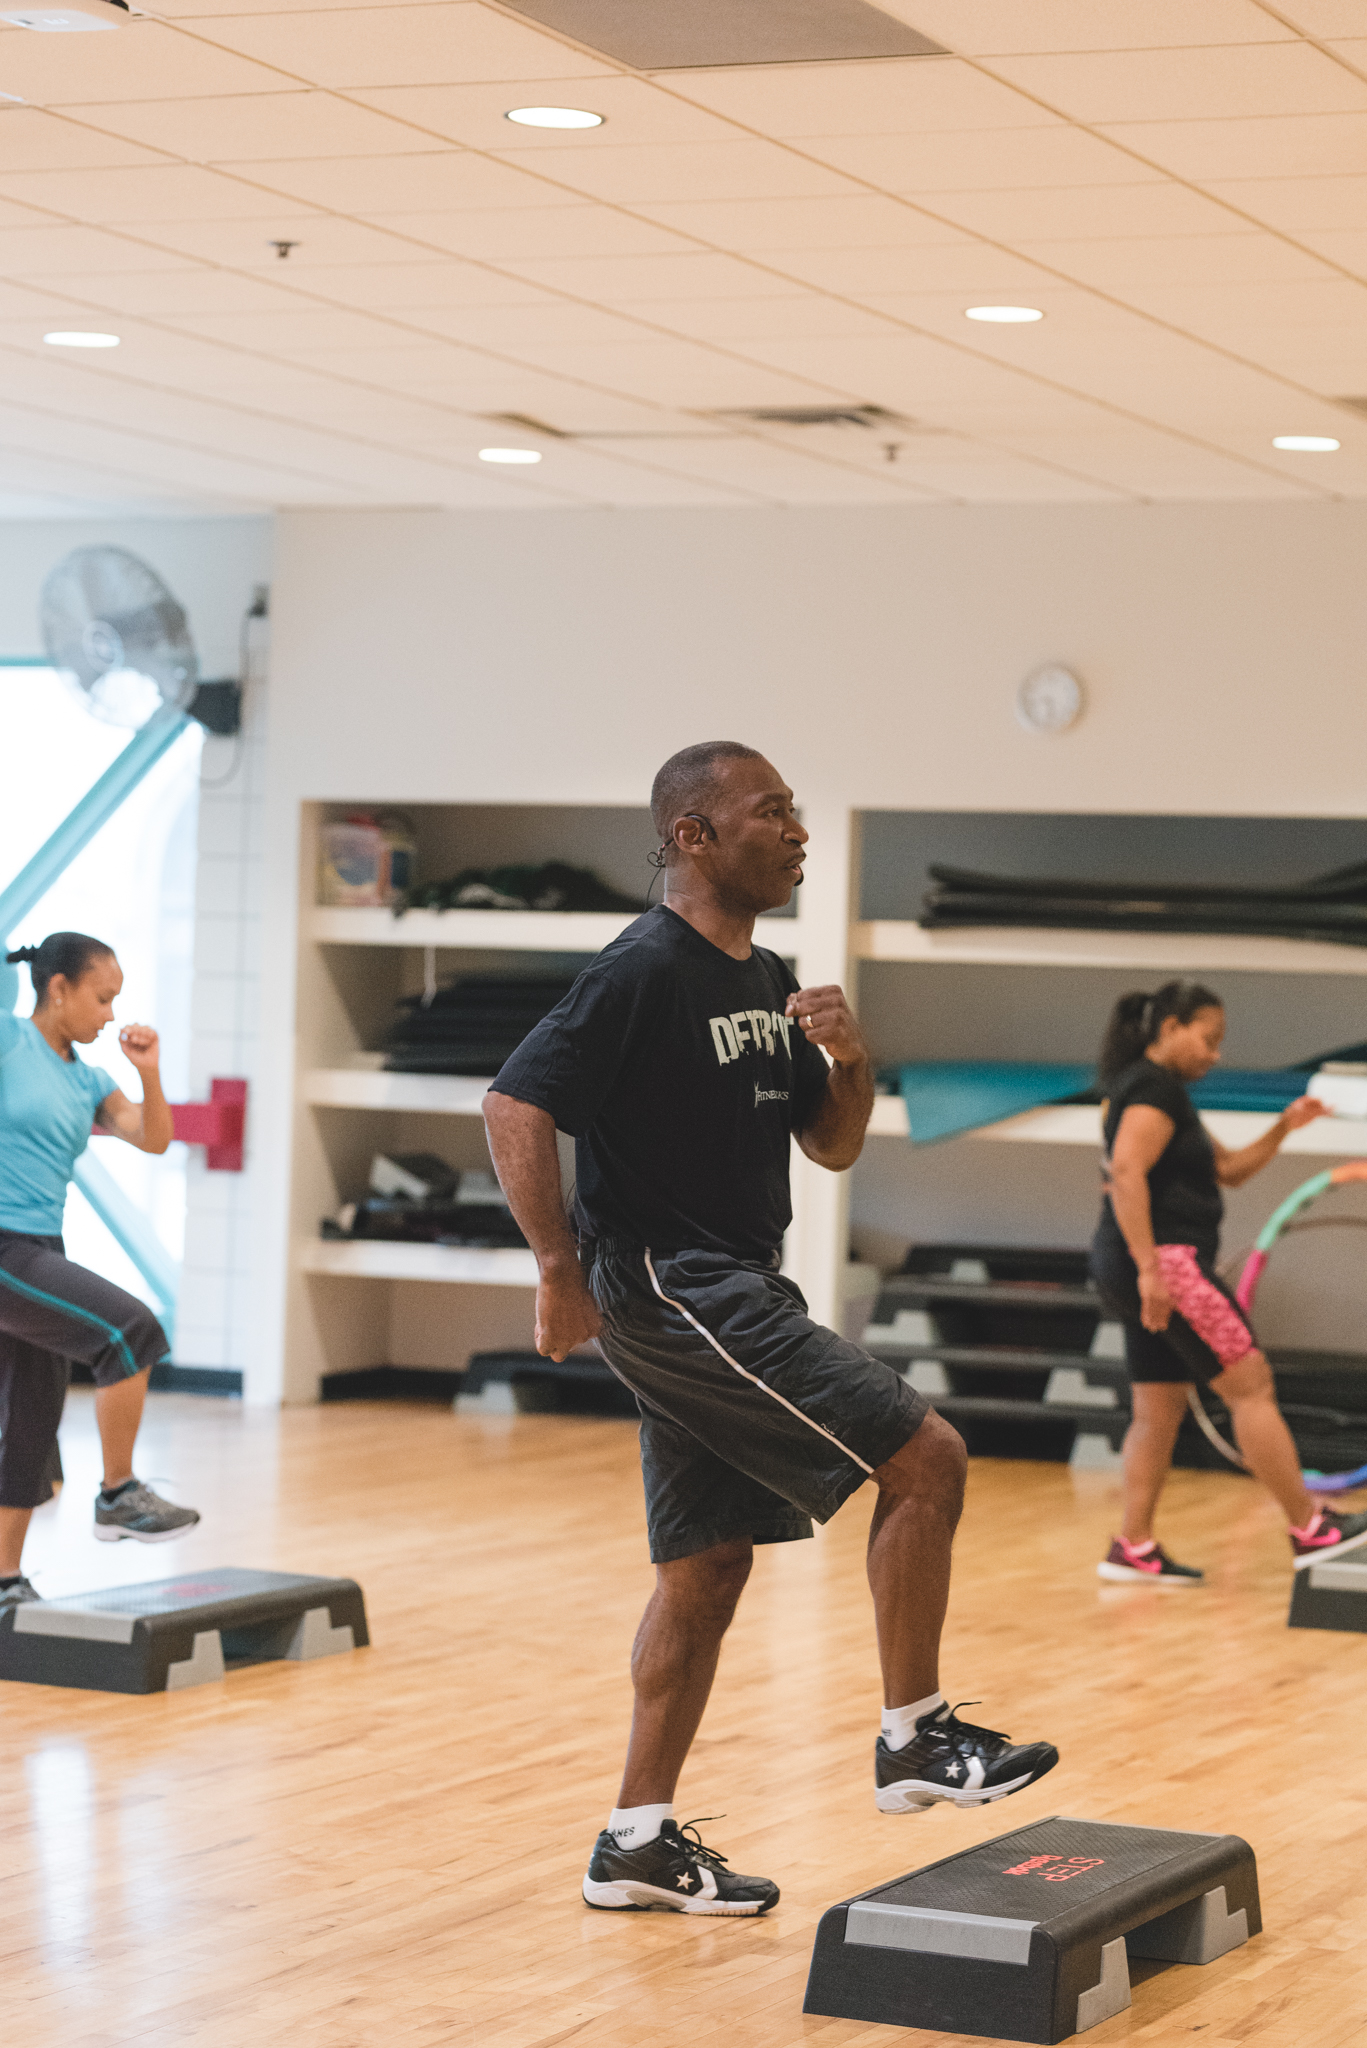 Fitness Center & Gym Near Detroit | FitnessWorks Health Club